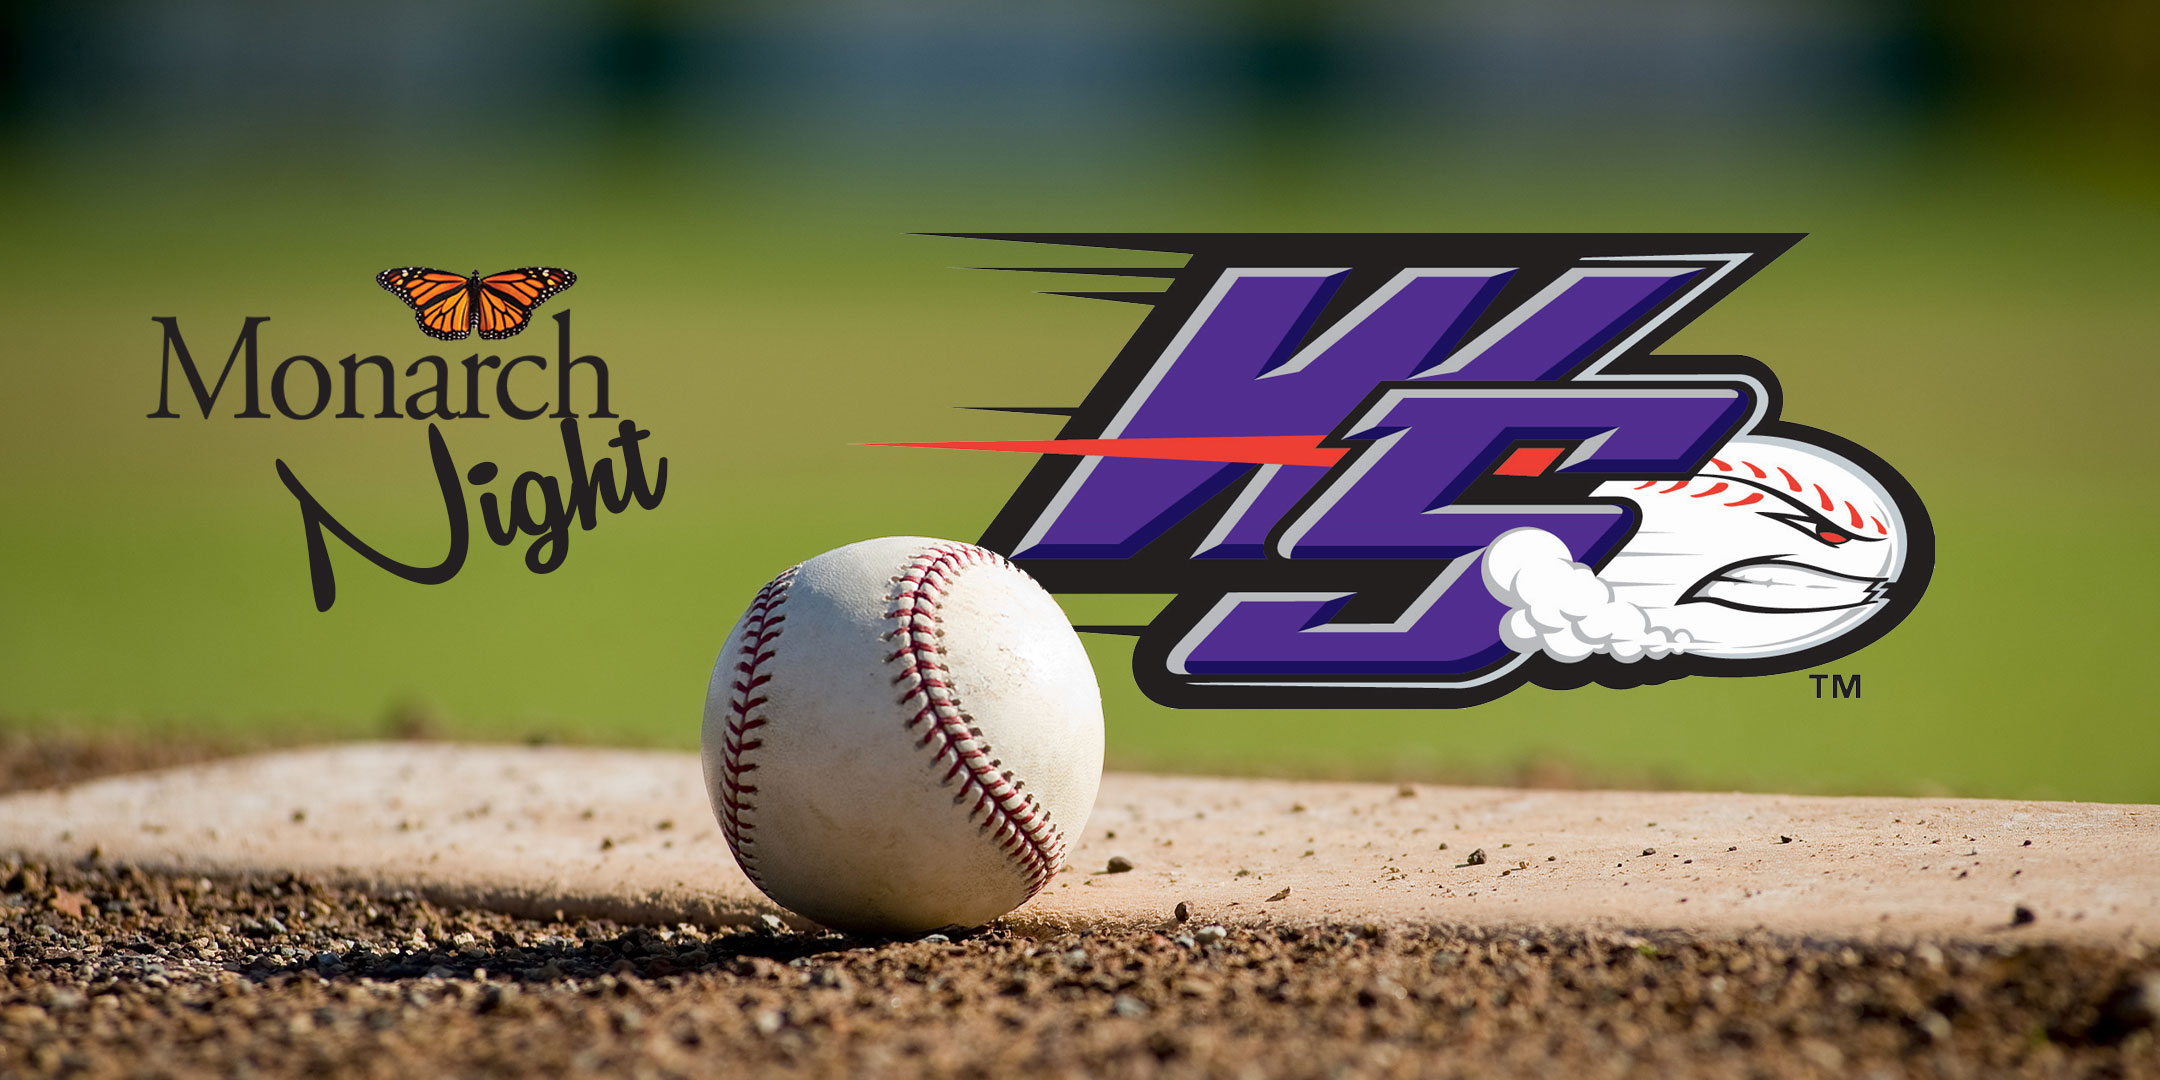 Take Me Out to the Ballgame! Monarch Night at the Winston-Salem Dash